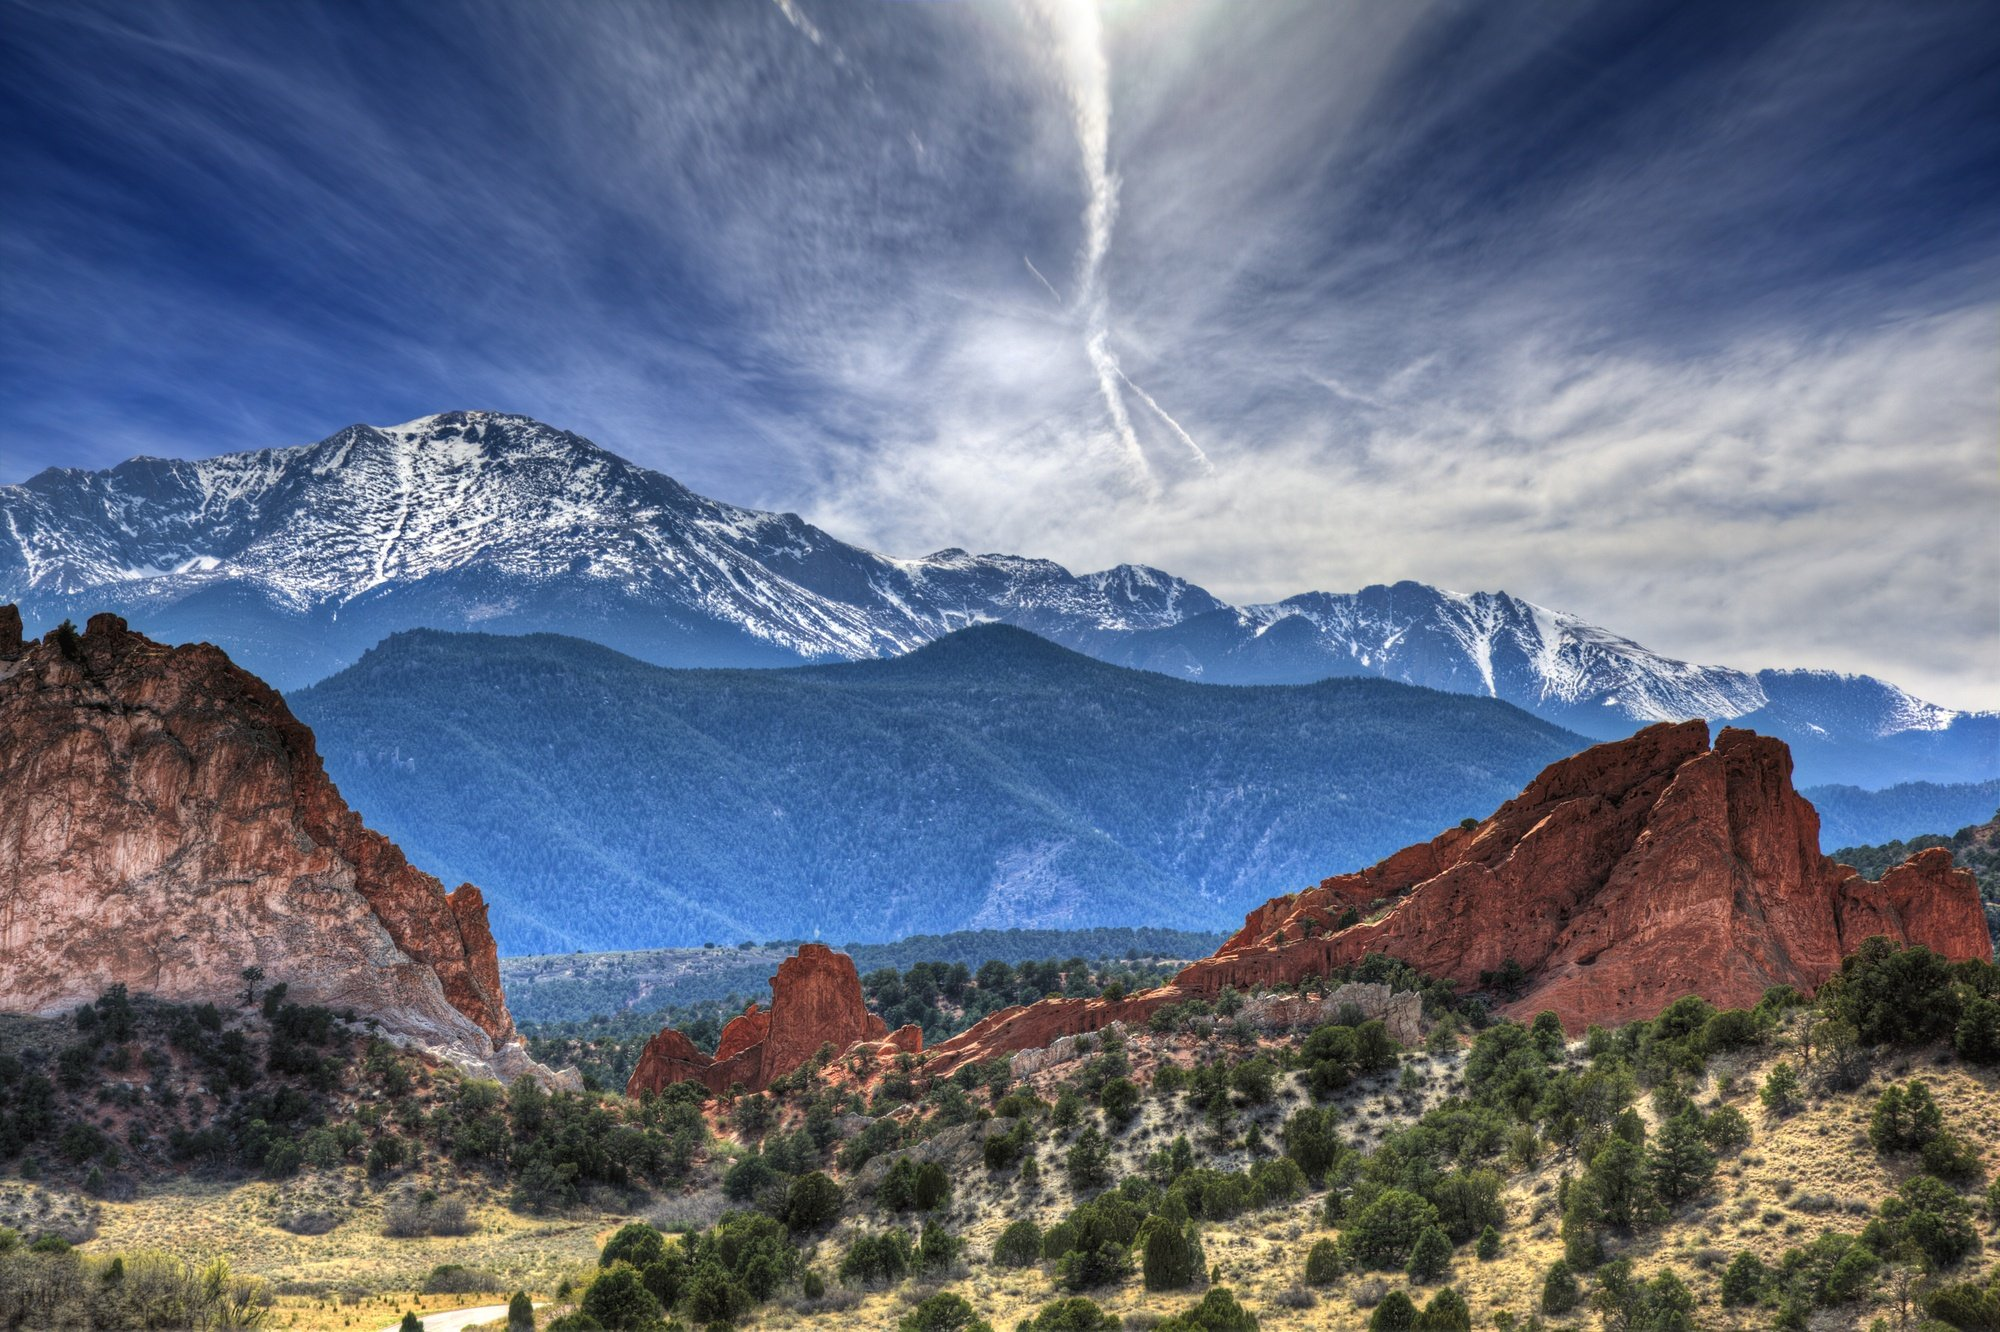 Garden of the Gods in Colorado Springs, Colorado with Pike's Peak in the background